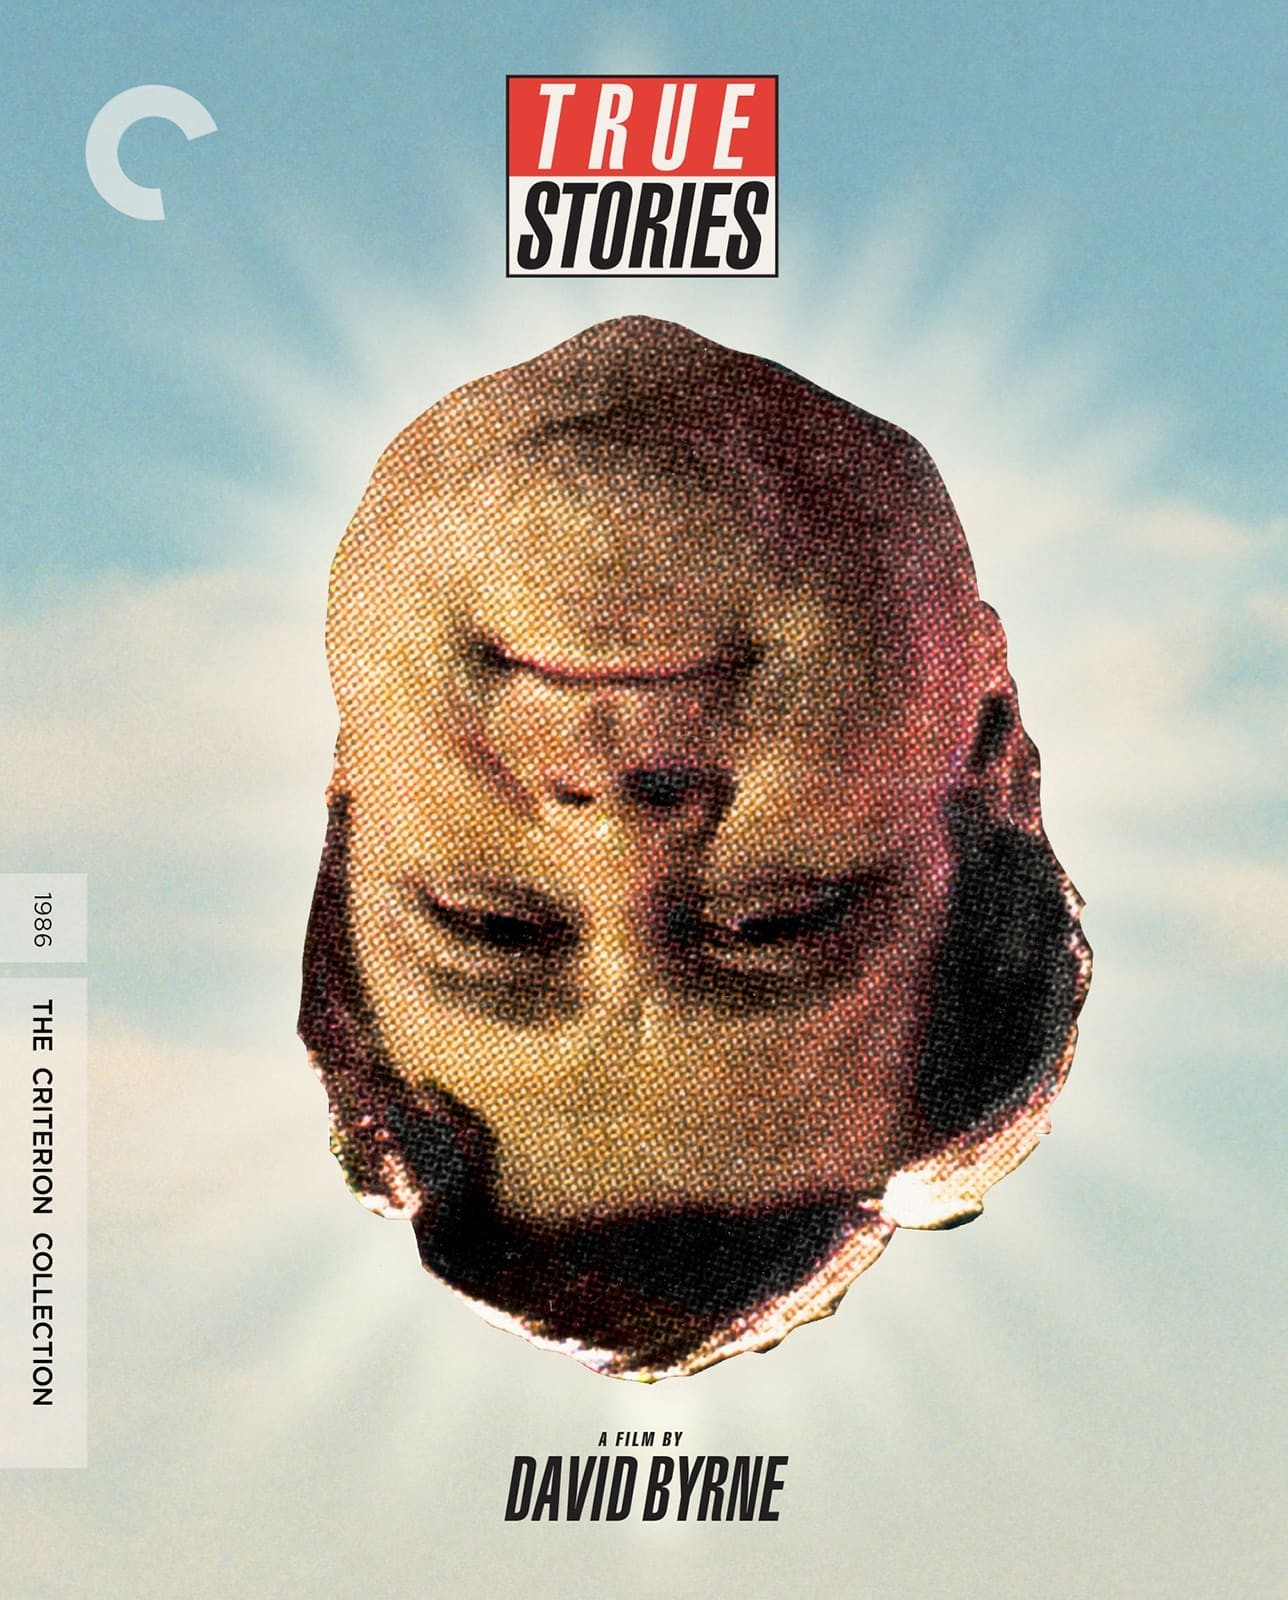 True Stories (DigiPack)(The Criterion Collection)(Blu-ray)(Region A)